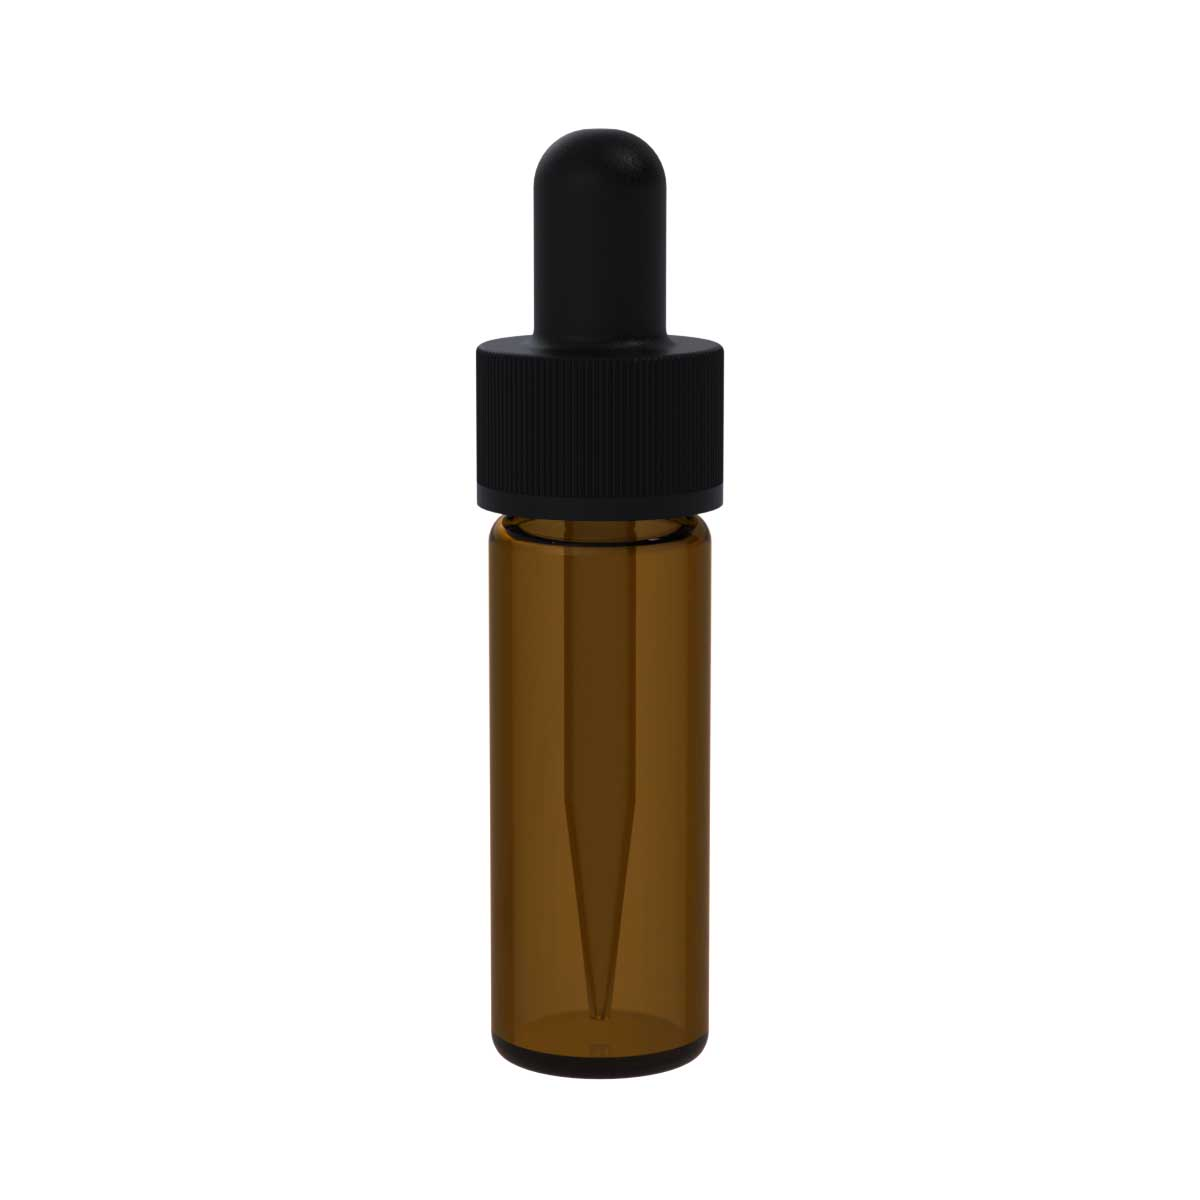 Amber glass dropper bottle with black cap